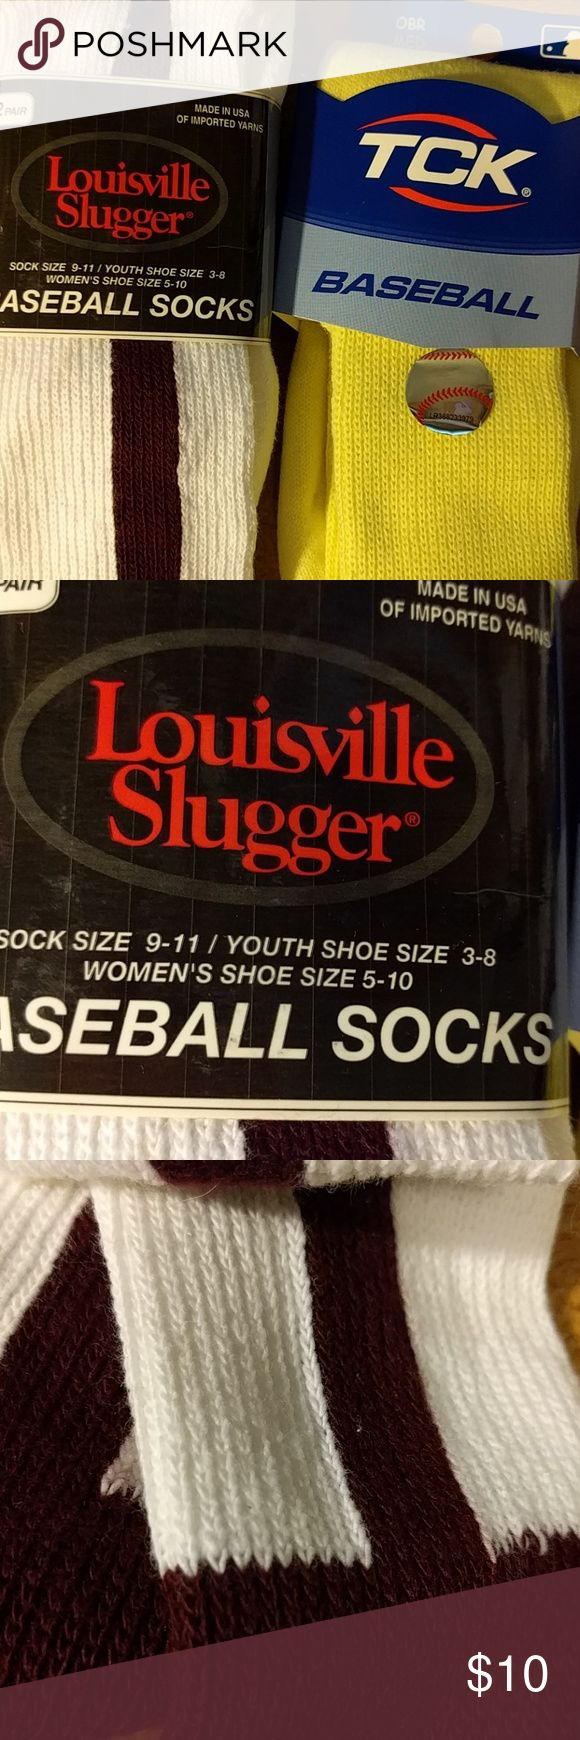 BUNDLE Youth Baseball Socks 2 pair White with Brown & 1 pair Yellow. White size 9 -11 fits youth size 3-8 Yelliw size M fits shoe size  7-10. Accessories Socks & Tights